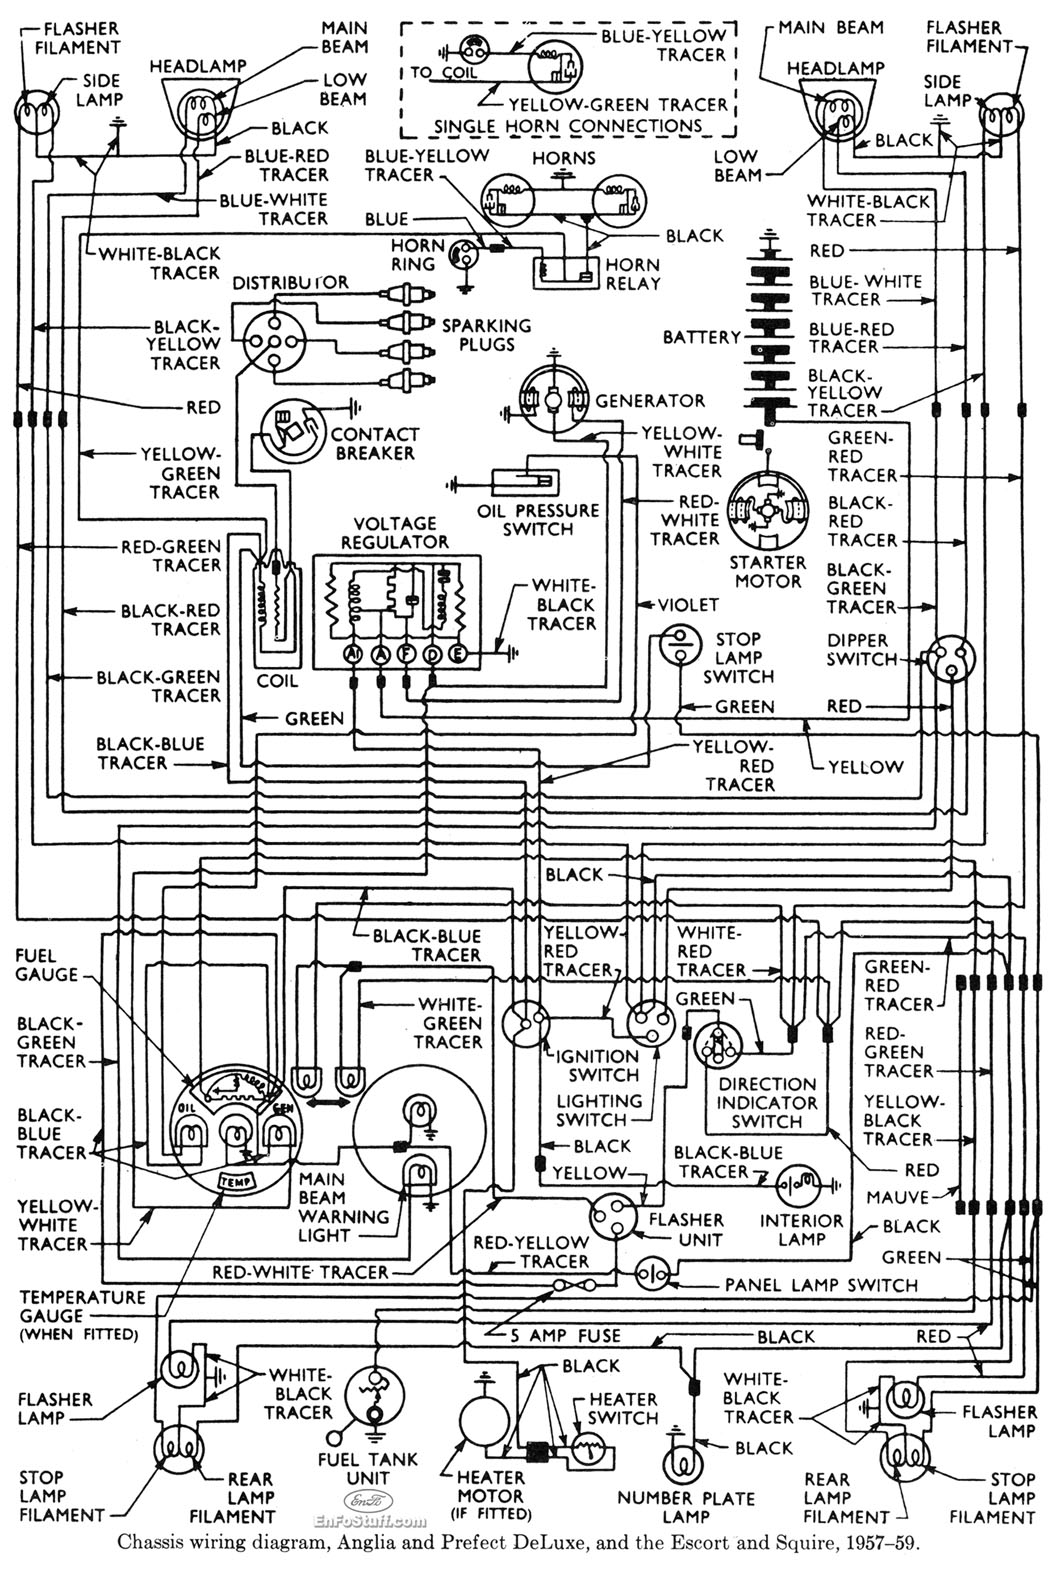 Attractive Clarion Drx5675 Wiring Diagram Pdf Inspiration ...